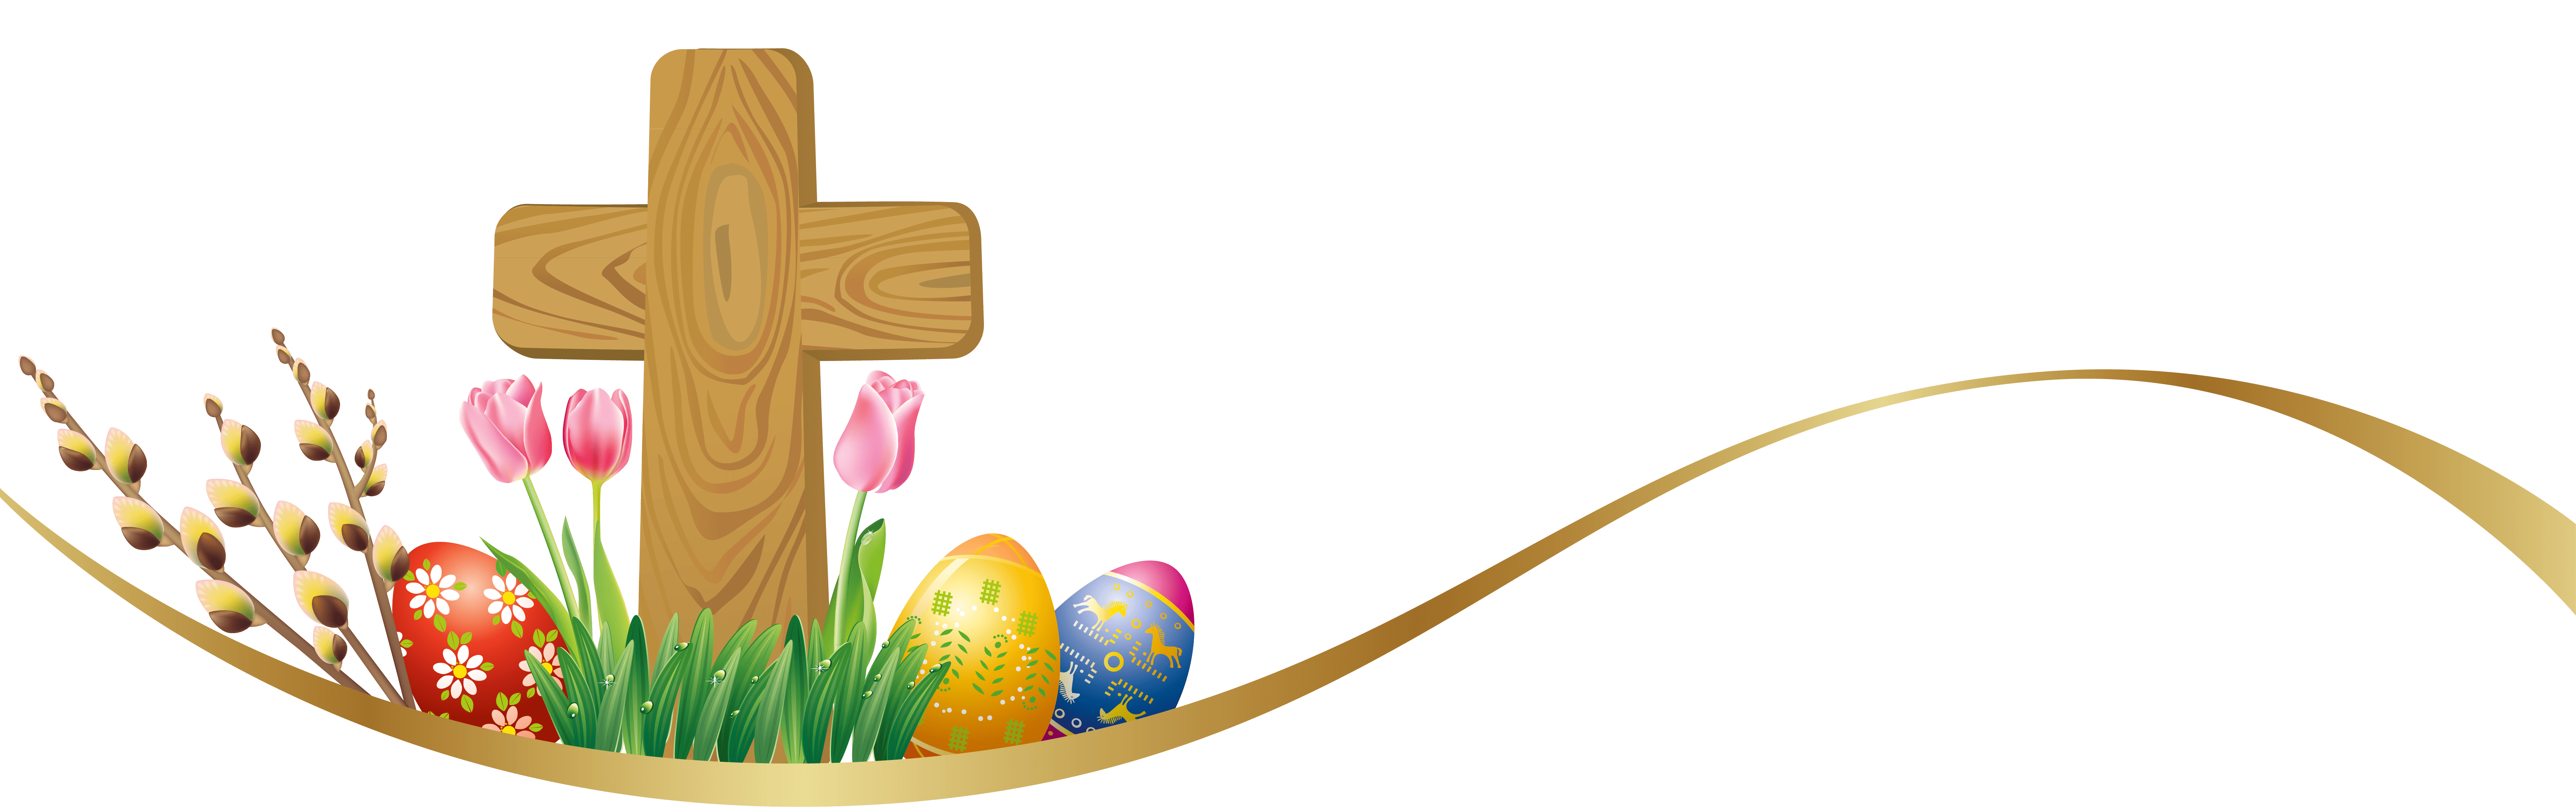 Happy Easter Cross Transparent Png Clipart Free Download Ya